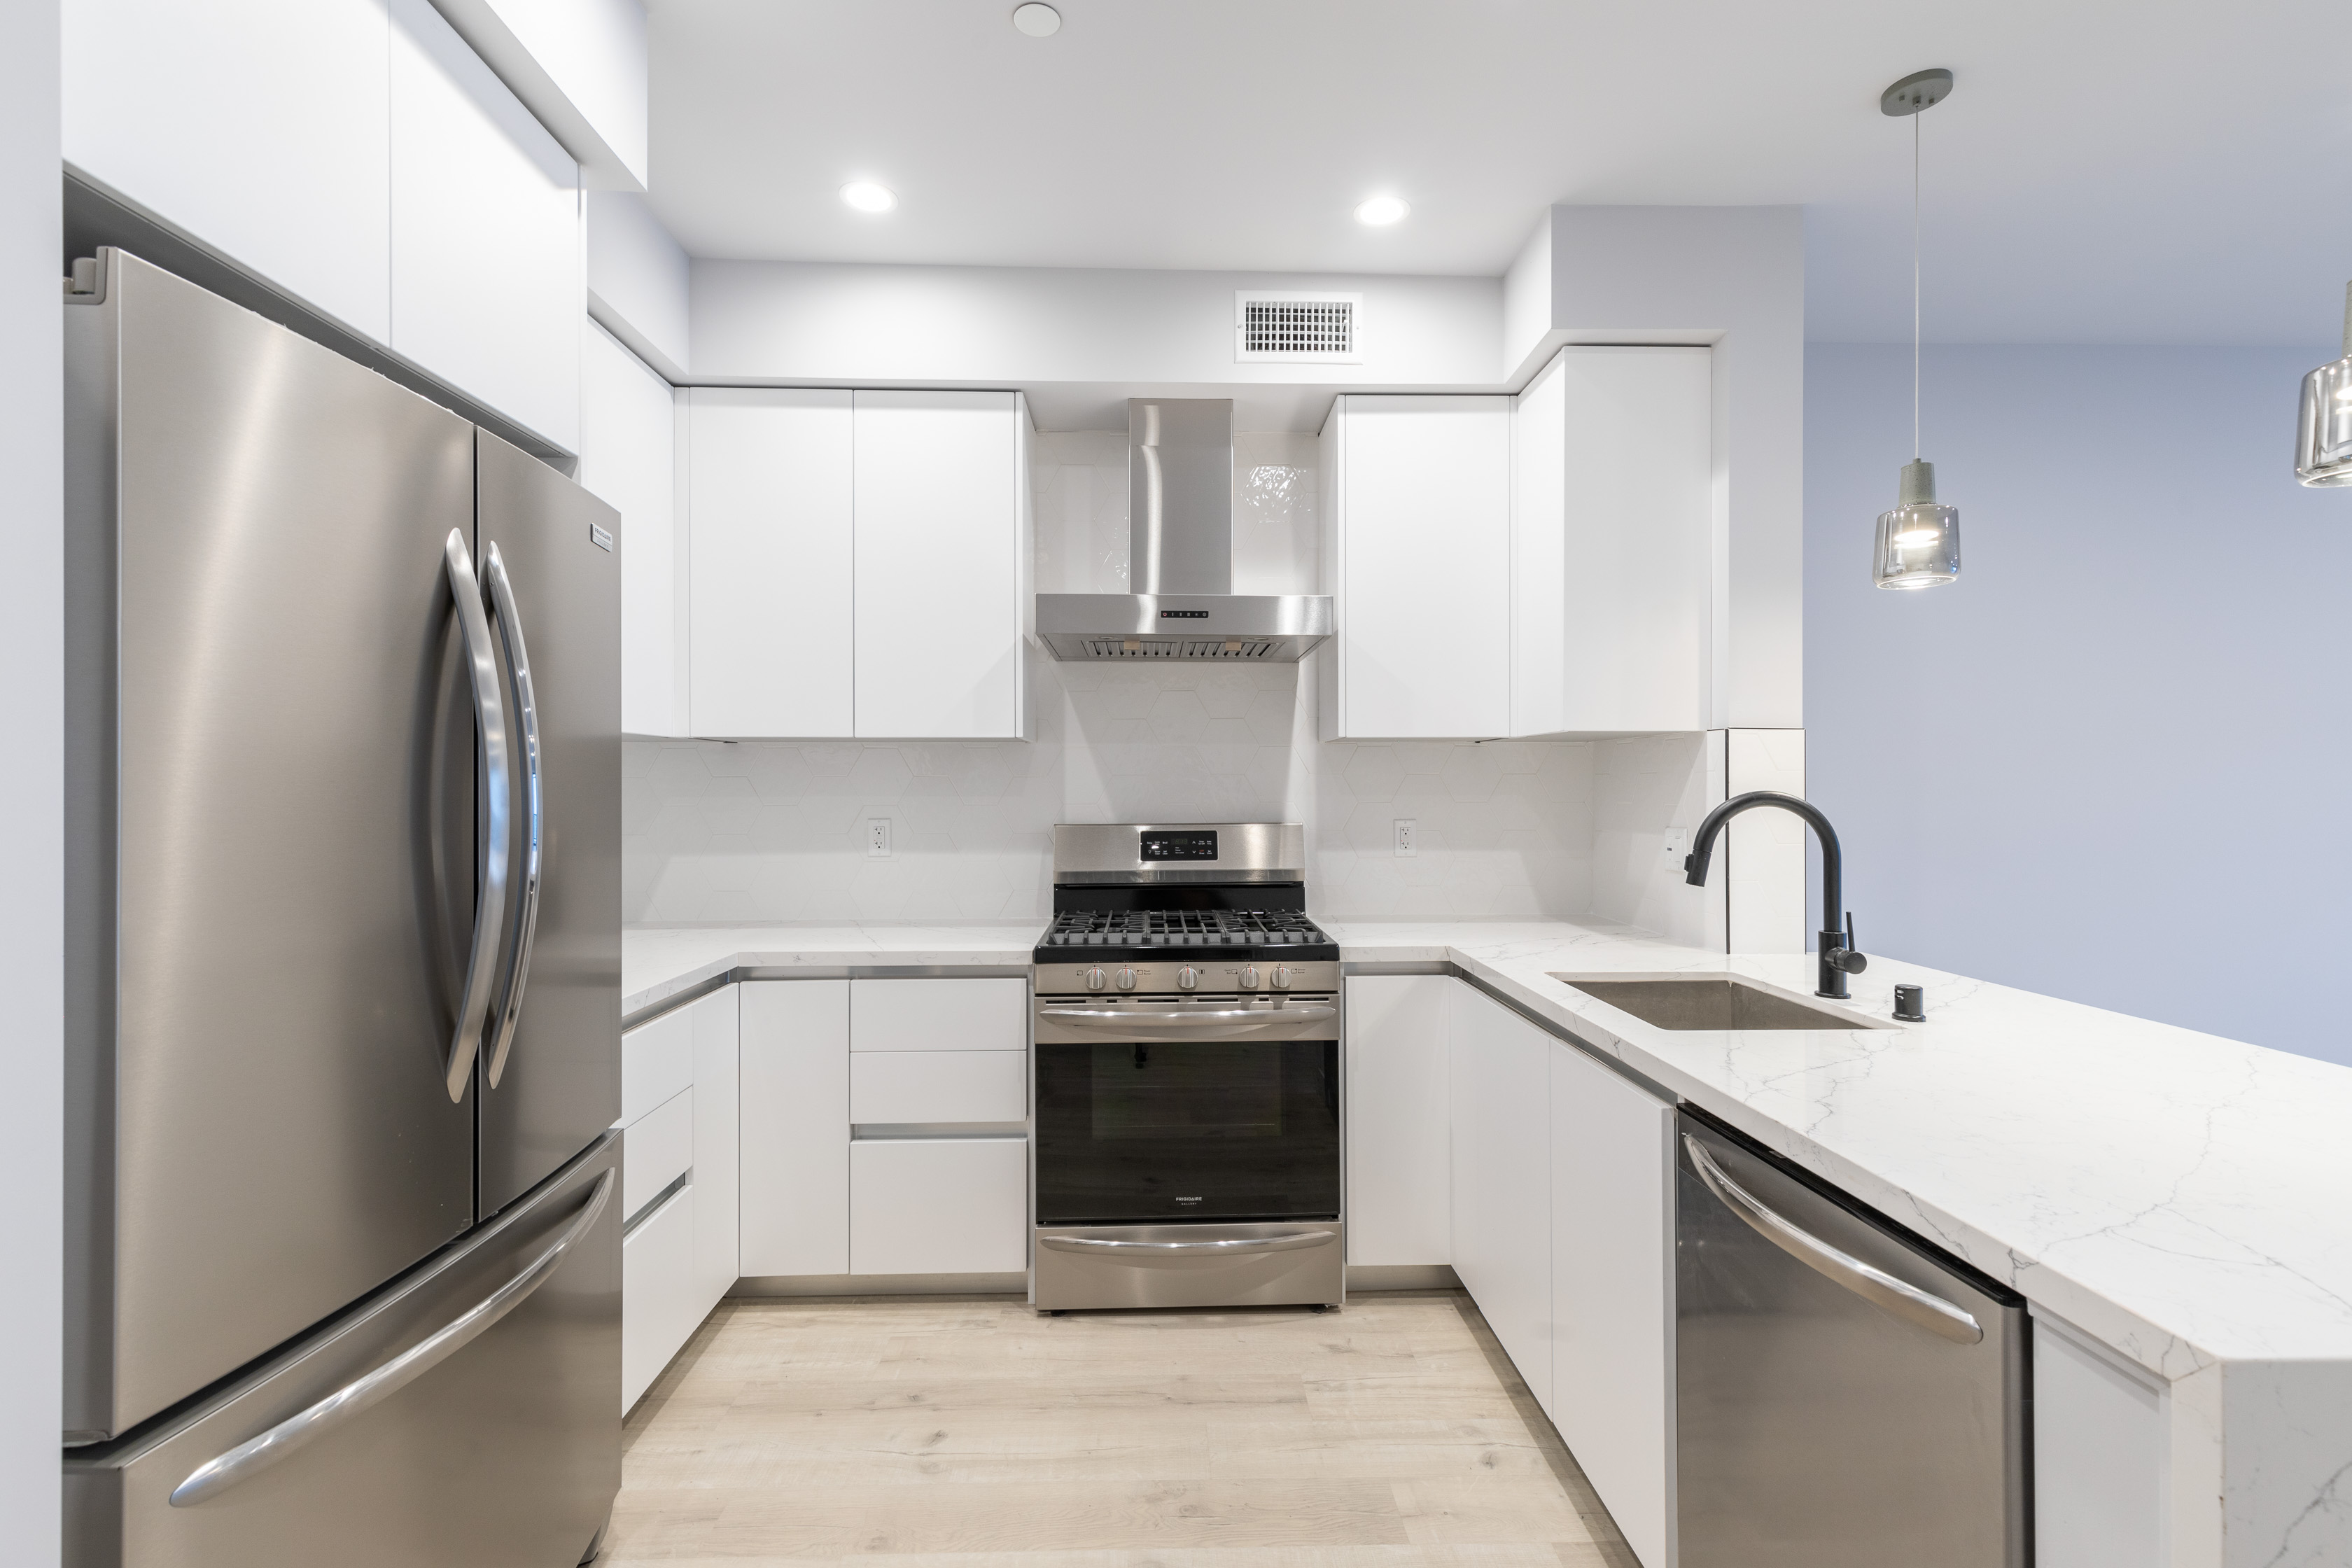 2BR/ 2BA W/ LARGE PRIVATE PATIO, ROOFTOP, GYM, & 2 PARKING SPACES IN A MARVELOUS LUXURY BUILDING